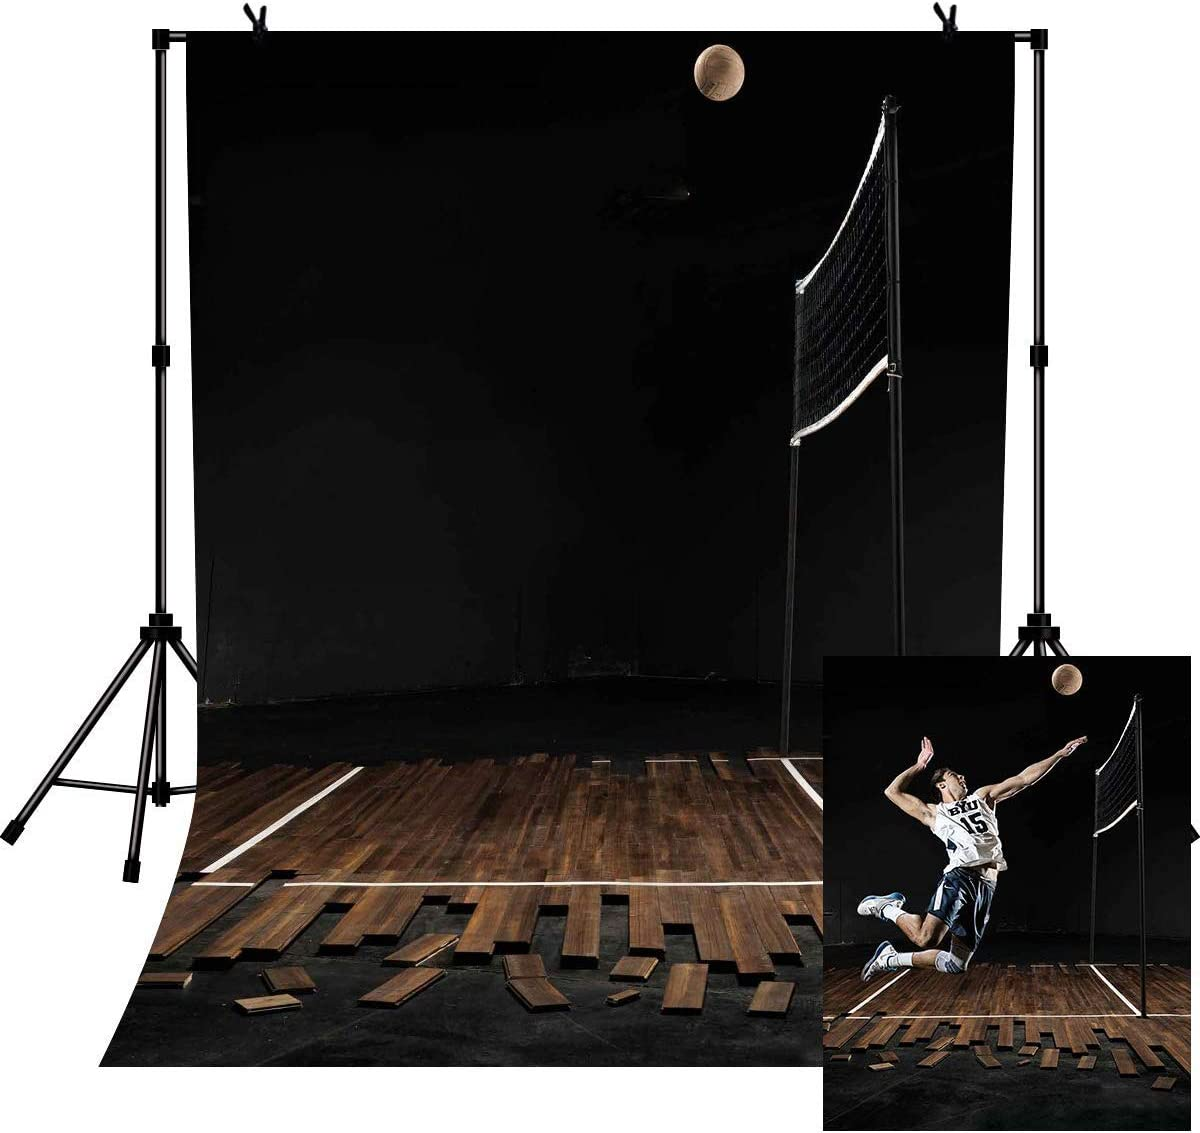 CdHBH 6x9ft Sports Theme Background Wooden Floor Volleyball Game Field Photo Studio Studio Photography Photography Props Portrait Clothing Photo Photography Background Cloth